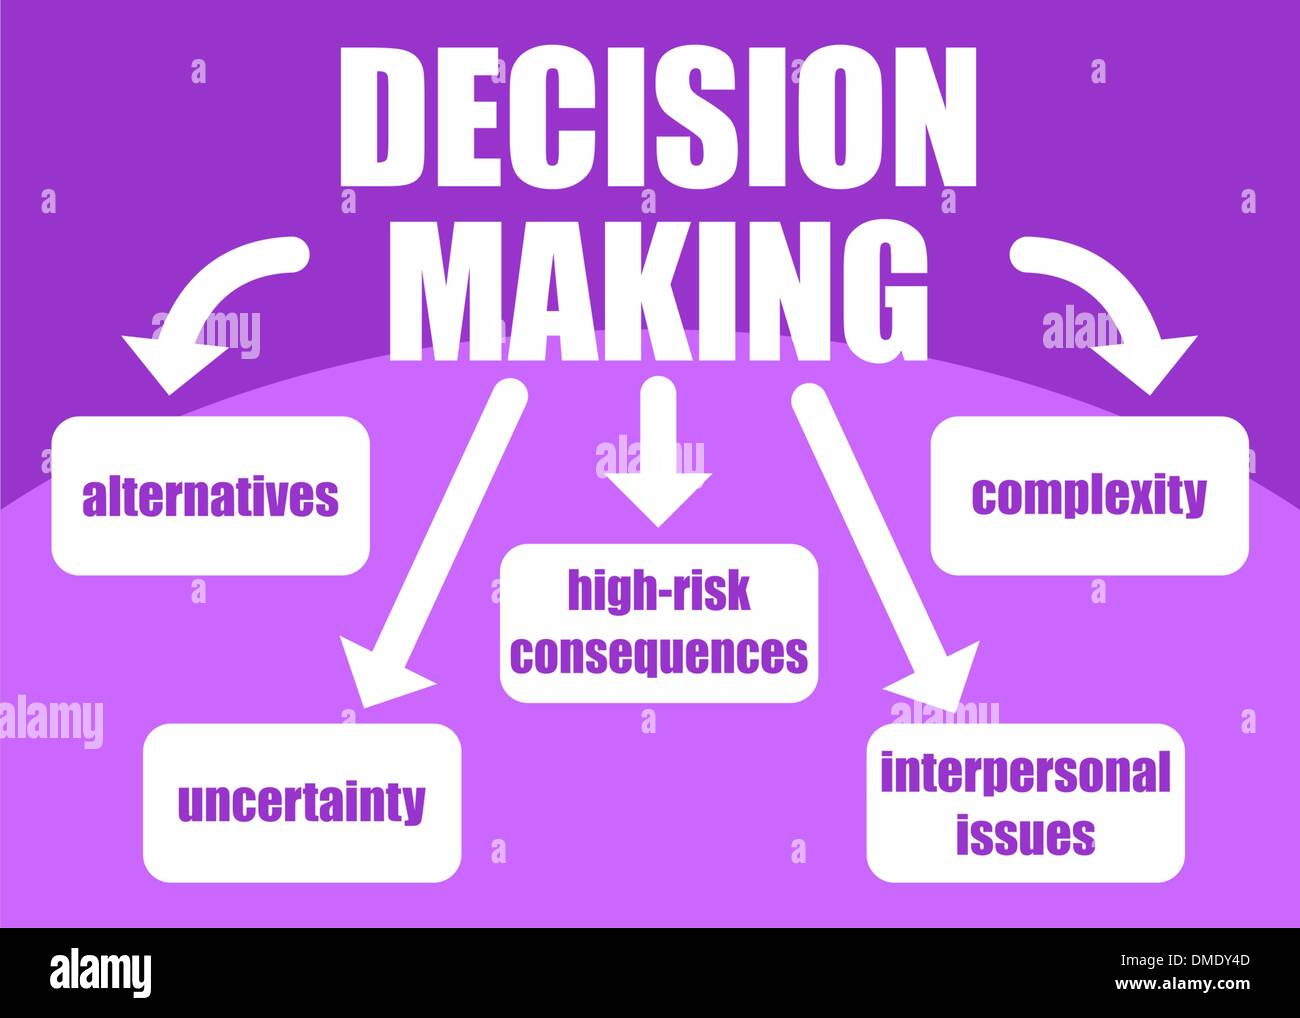 Decision making concept - Stock Image